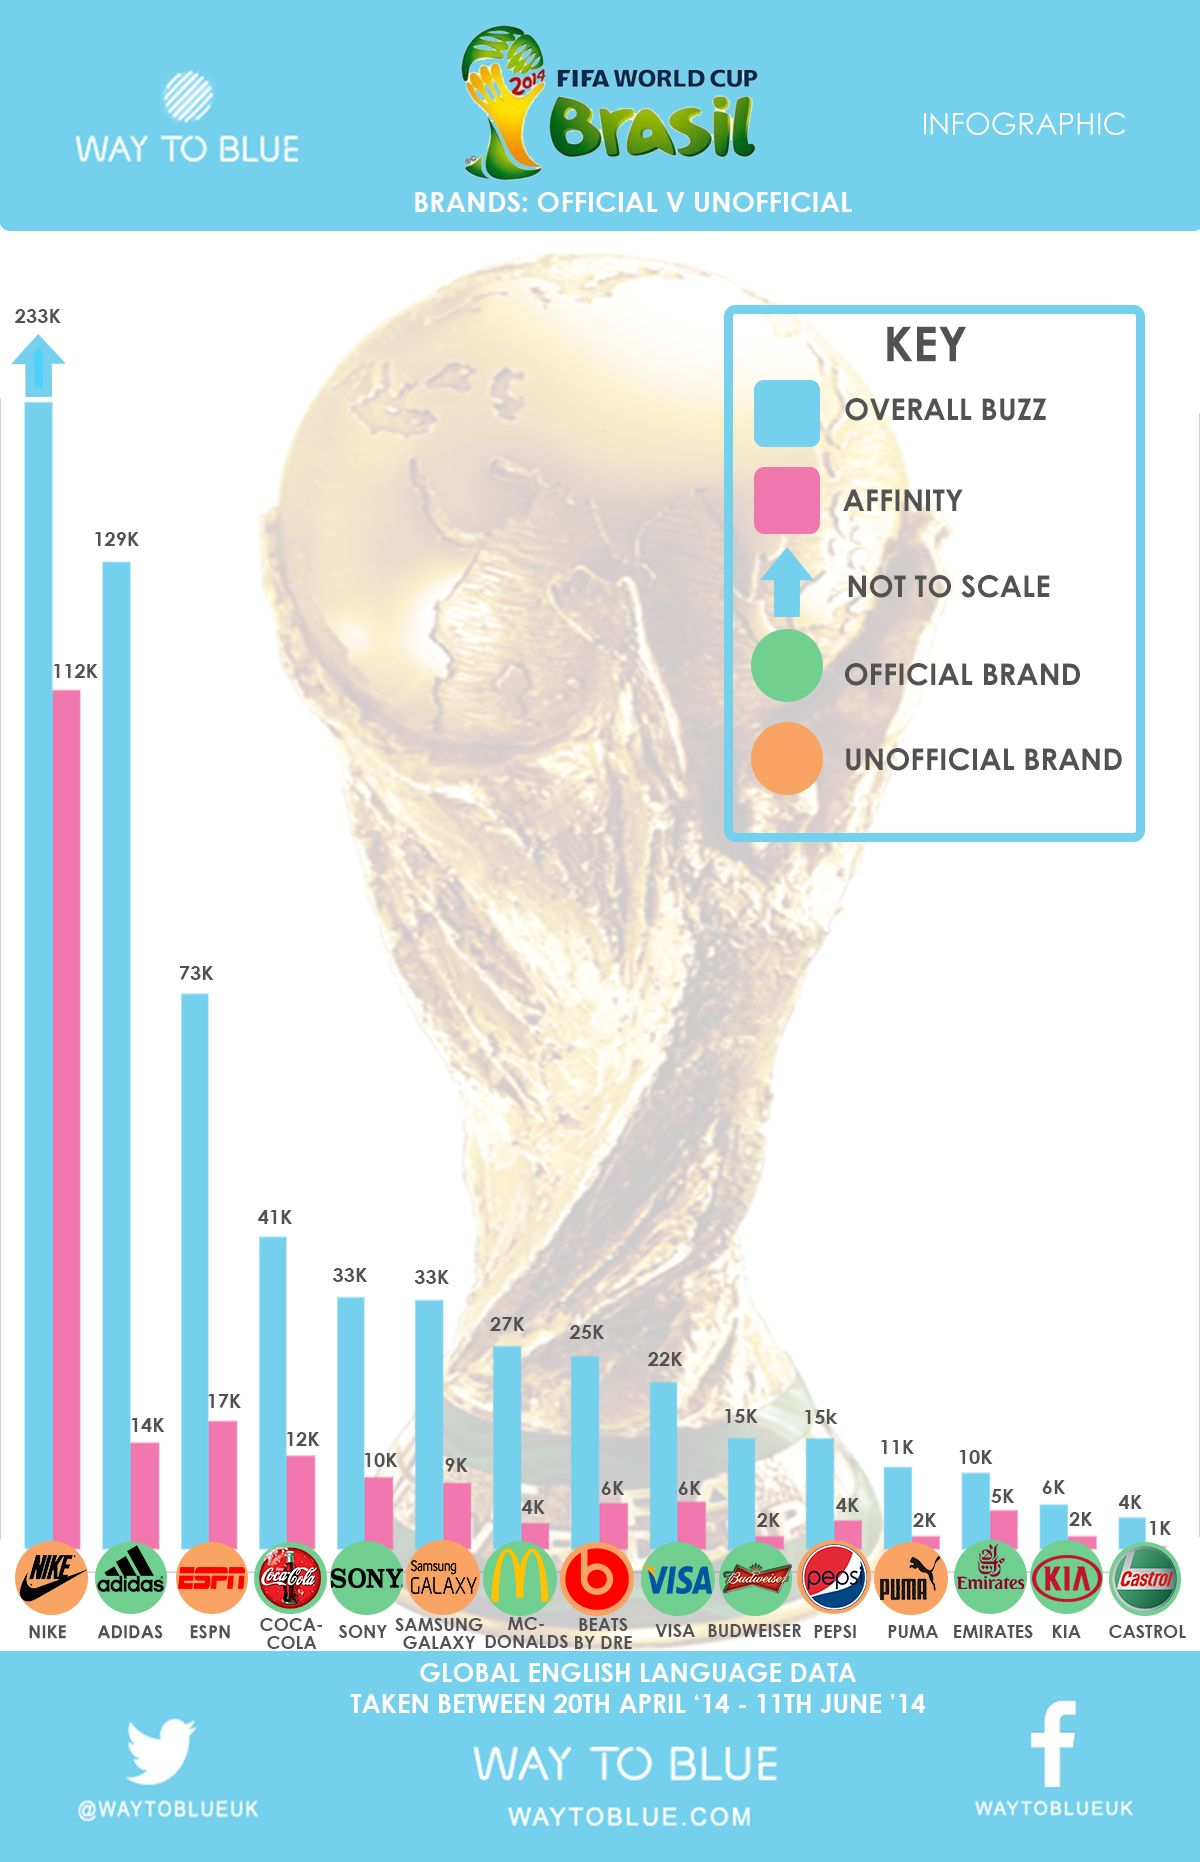 Infographic Nike Beats Official World Cup Sponsors The Buzz And Affinity Around Brands World Cup Infographic Sport Inspiration